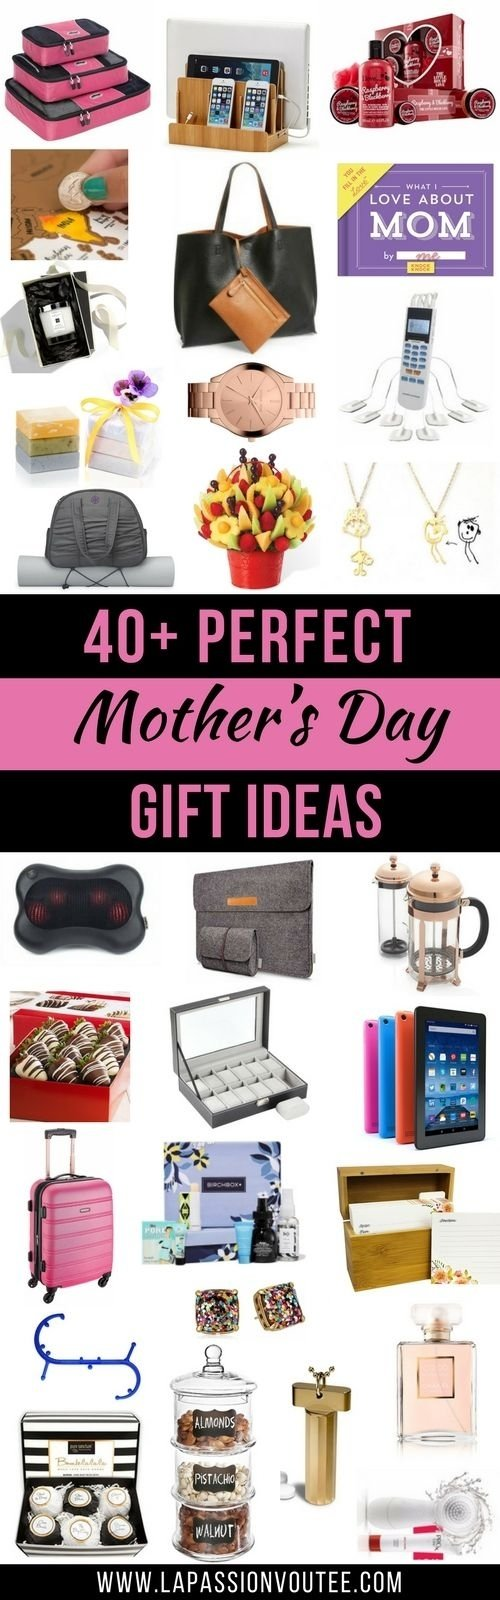 10 Unique Gift Ideas For Women Over 40 5749 best gift ideas images on pinterest